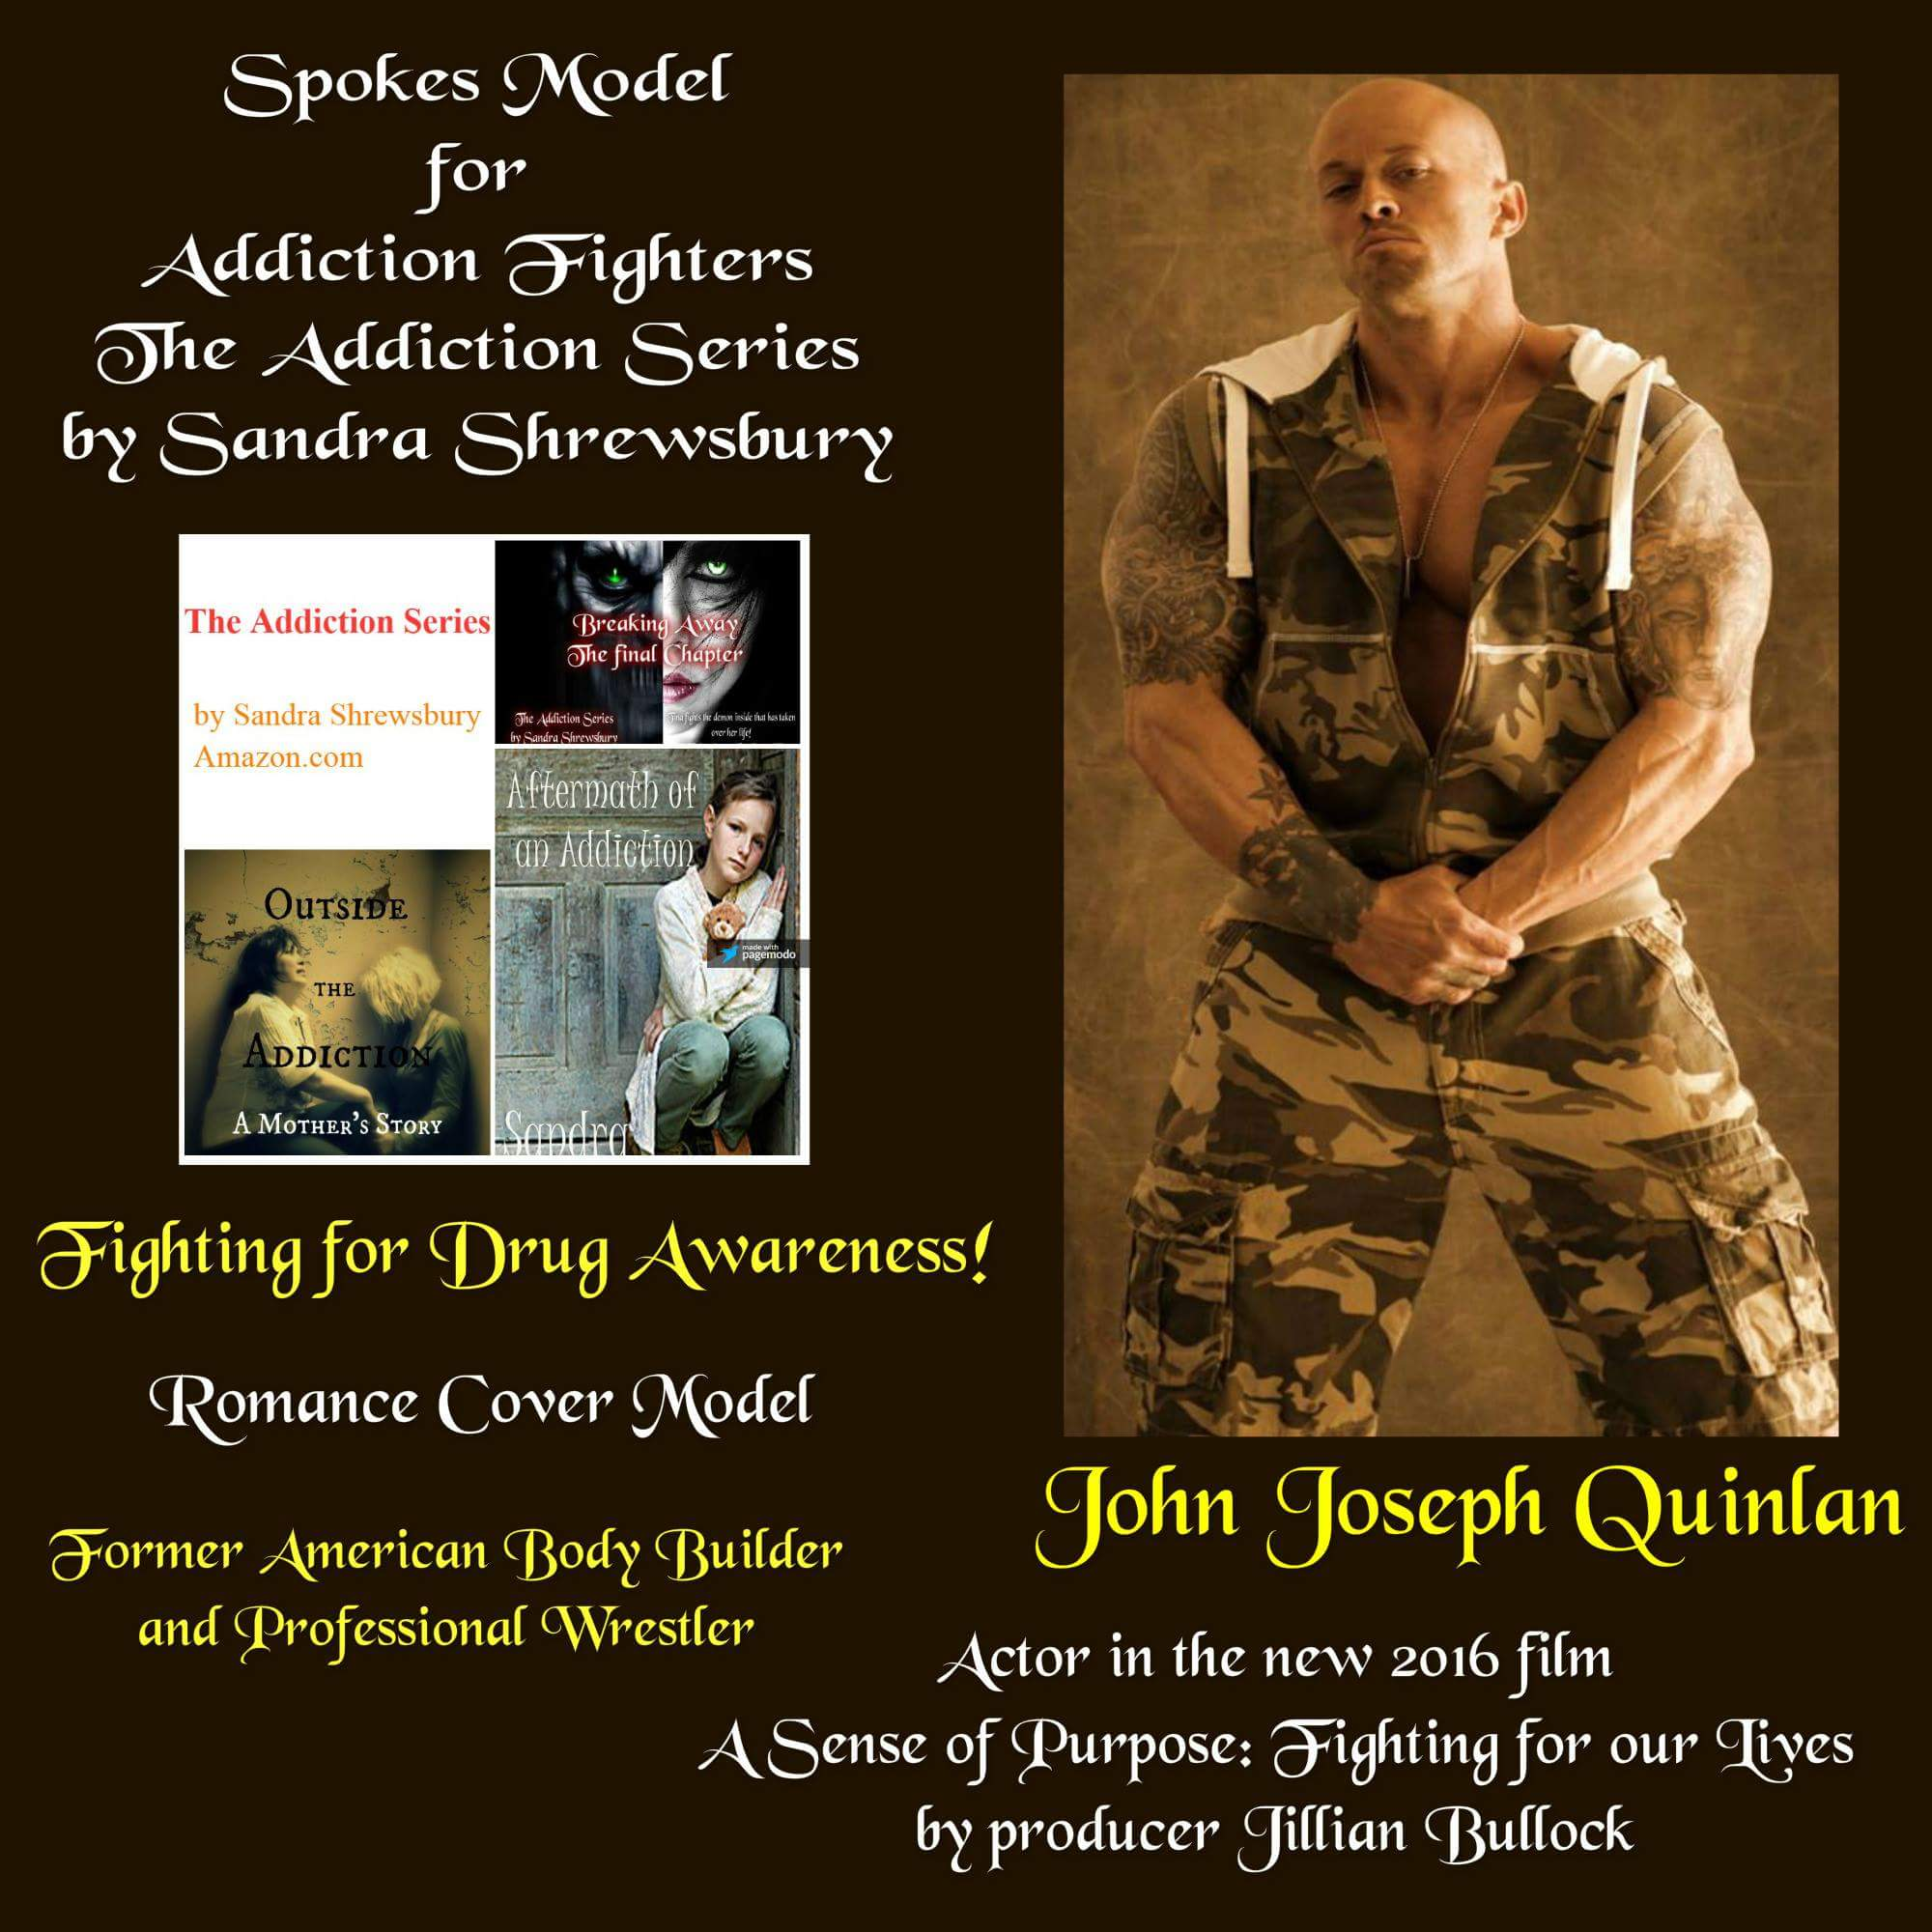 Addiction Series Celebrity Spokes Model John Joseph Quinlan Drugs Awareness Poster by Sandra Shrewsbury 2016 #JohnQuinlan